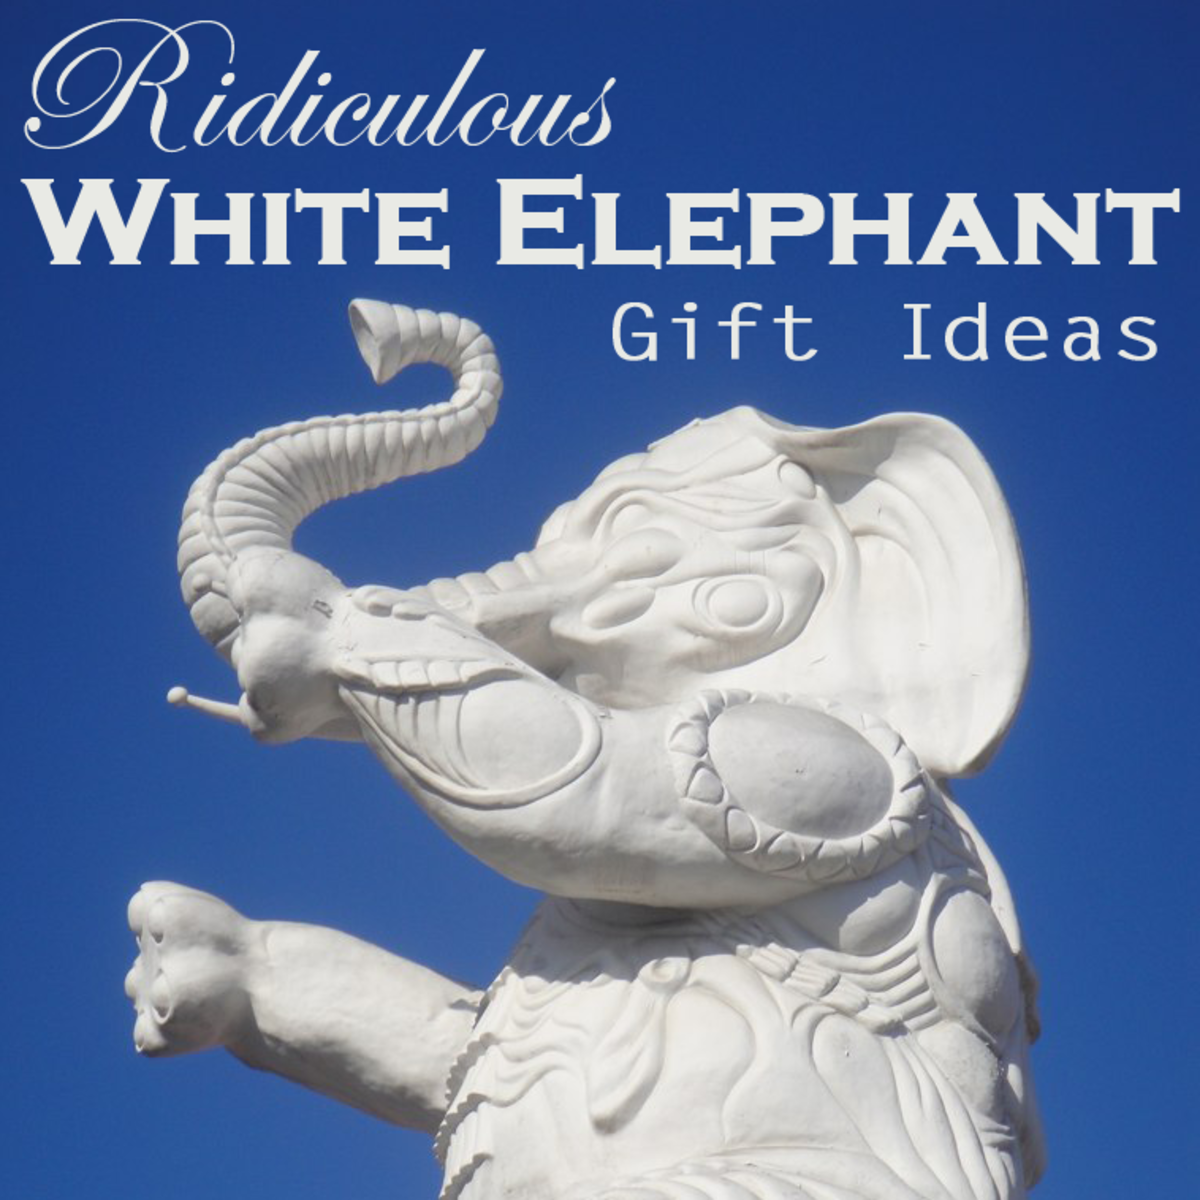 12 Ridiculous White Elephant Gift Ideas